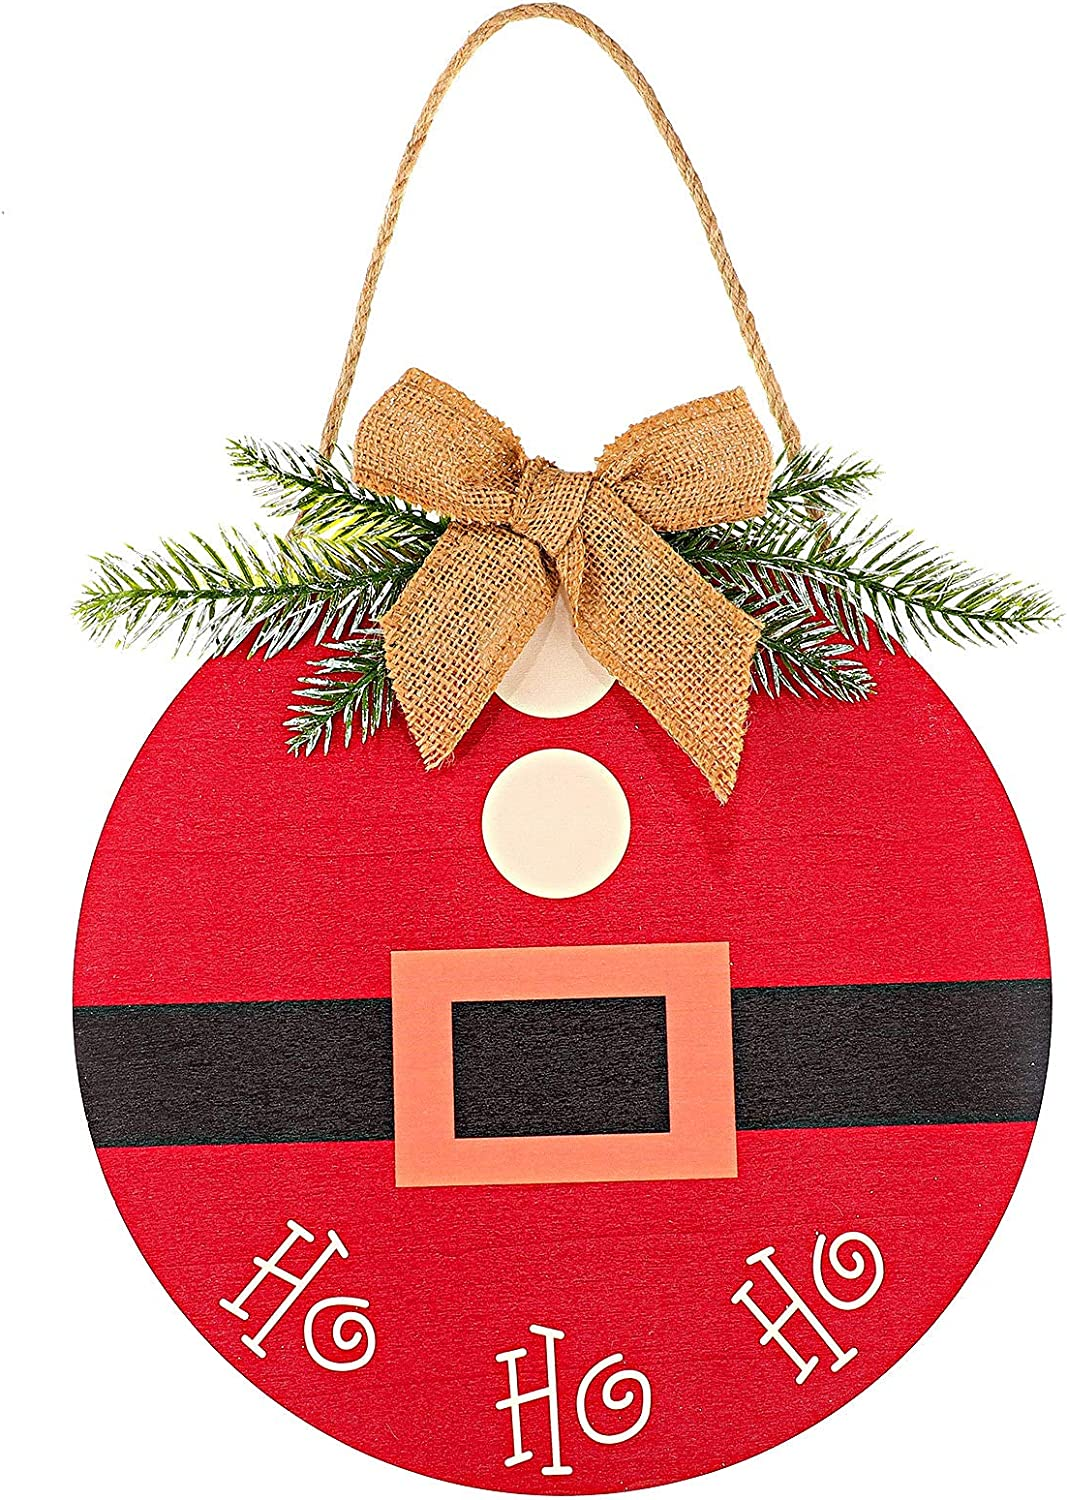 1 Piece Front Door Round Wood Christmas Hanging Sign Christmas Front Door Decorations Rustic Burlap Wooden Holiday Decor with Decorative Bow and Branch for Christmas Holiday Front Door Wall Porch